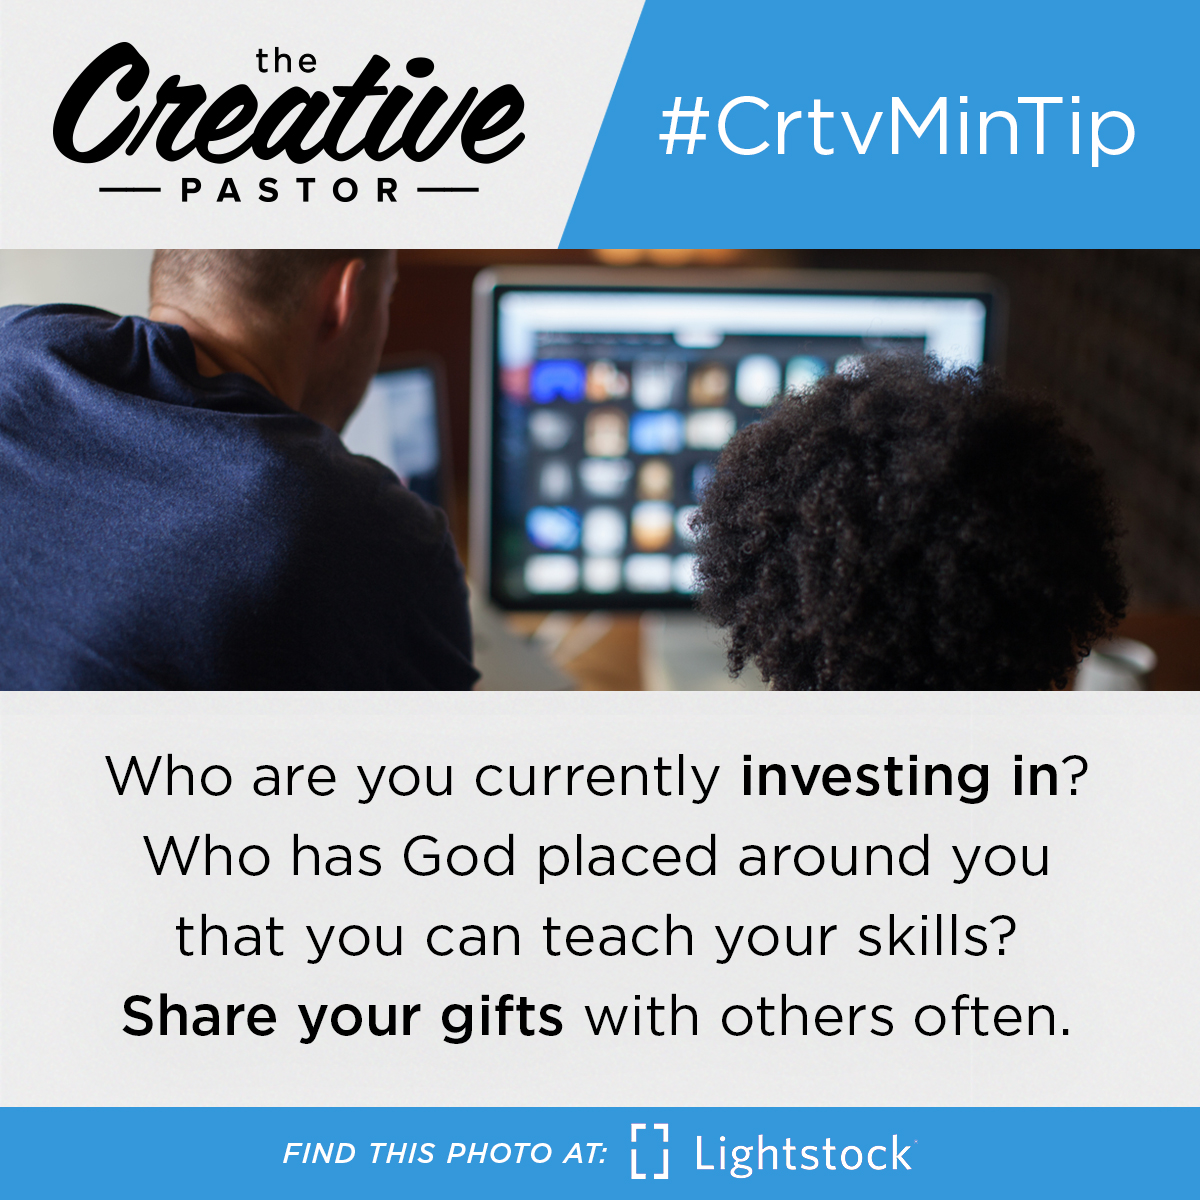 #CrtvMinTIp: Who are you currently investing in? Who has God placed around you that you can teach your skills? Share your gifts with others often.